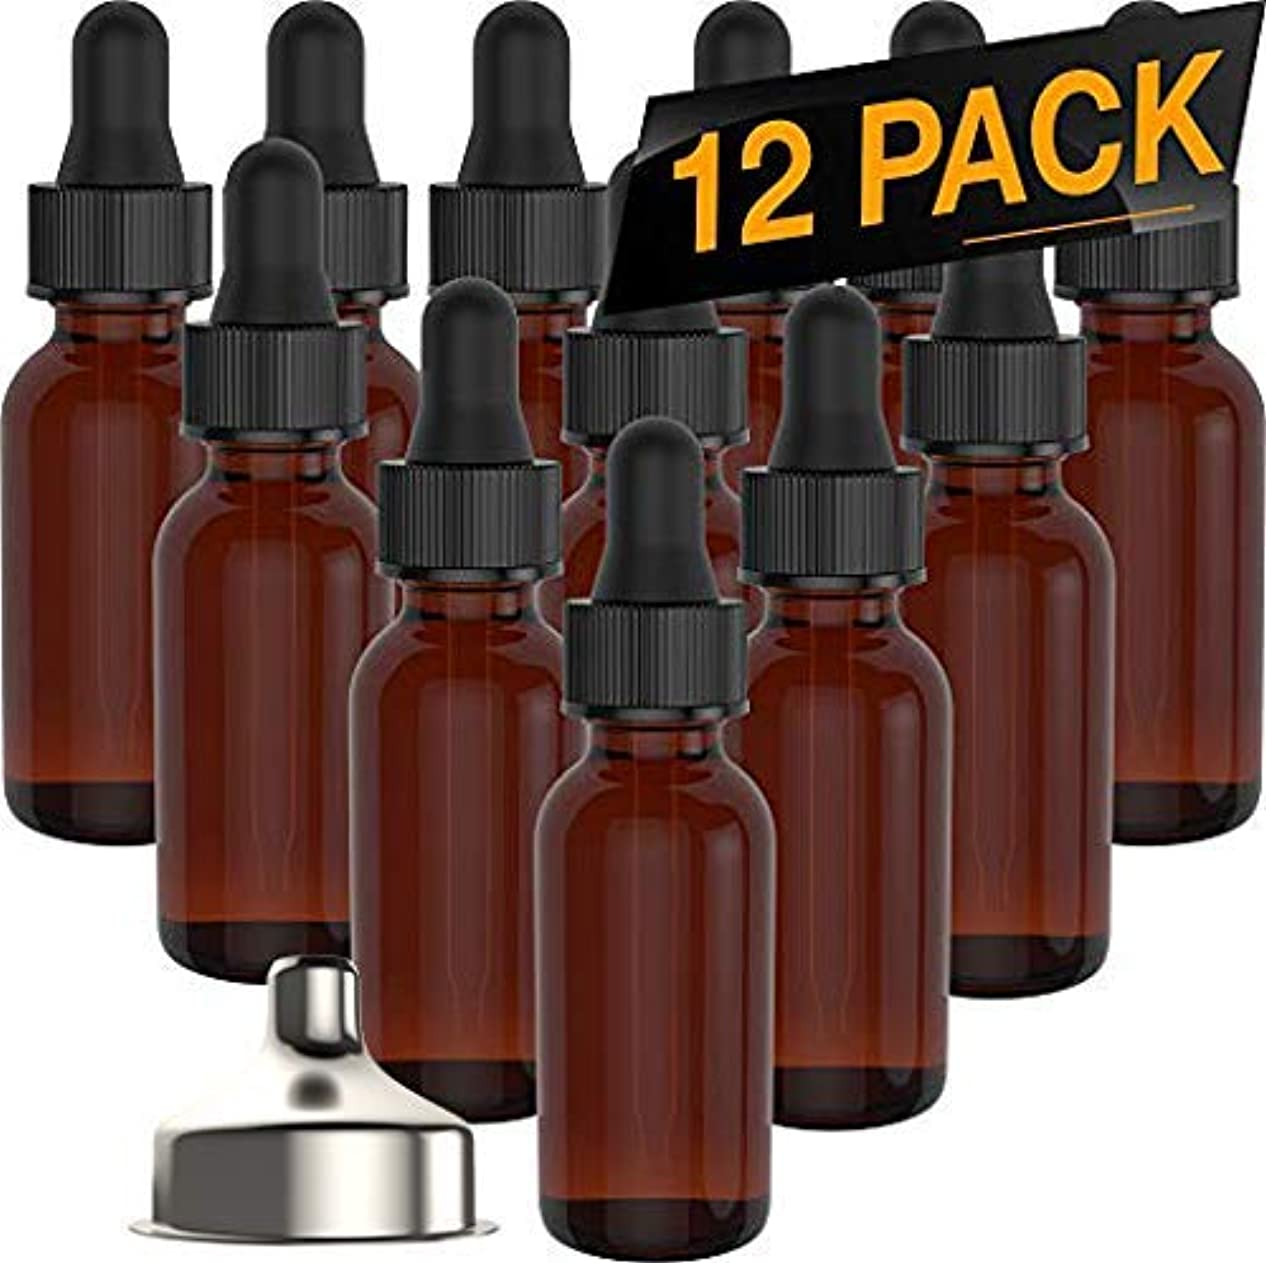 Essential Oil Roller Bottles - Round Boston Empty Refillable Amber Bottle with Glass Dropper [ Free Stainless...